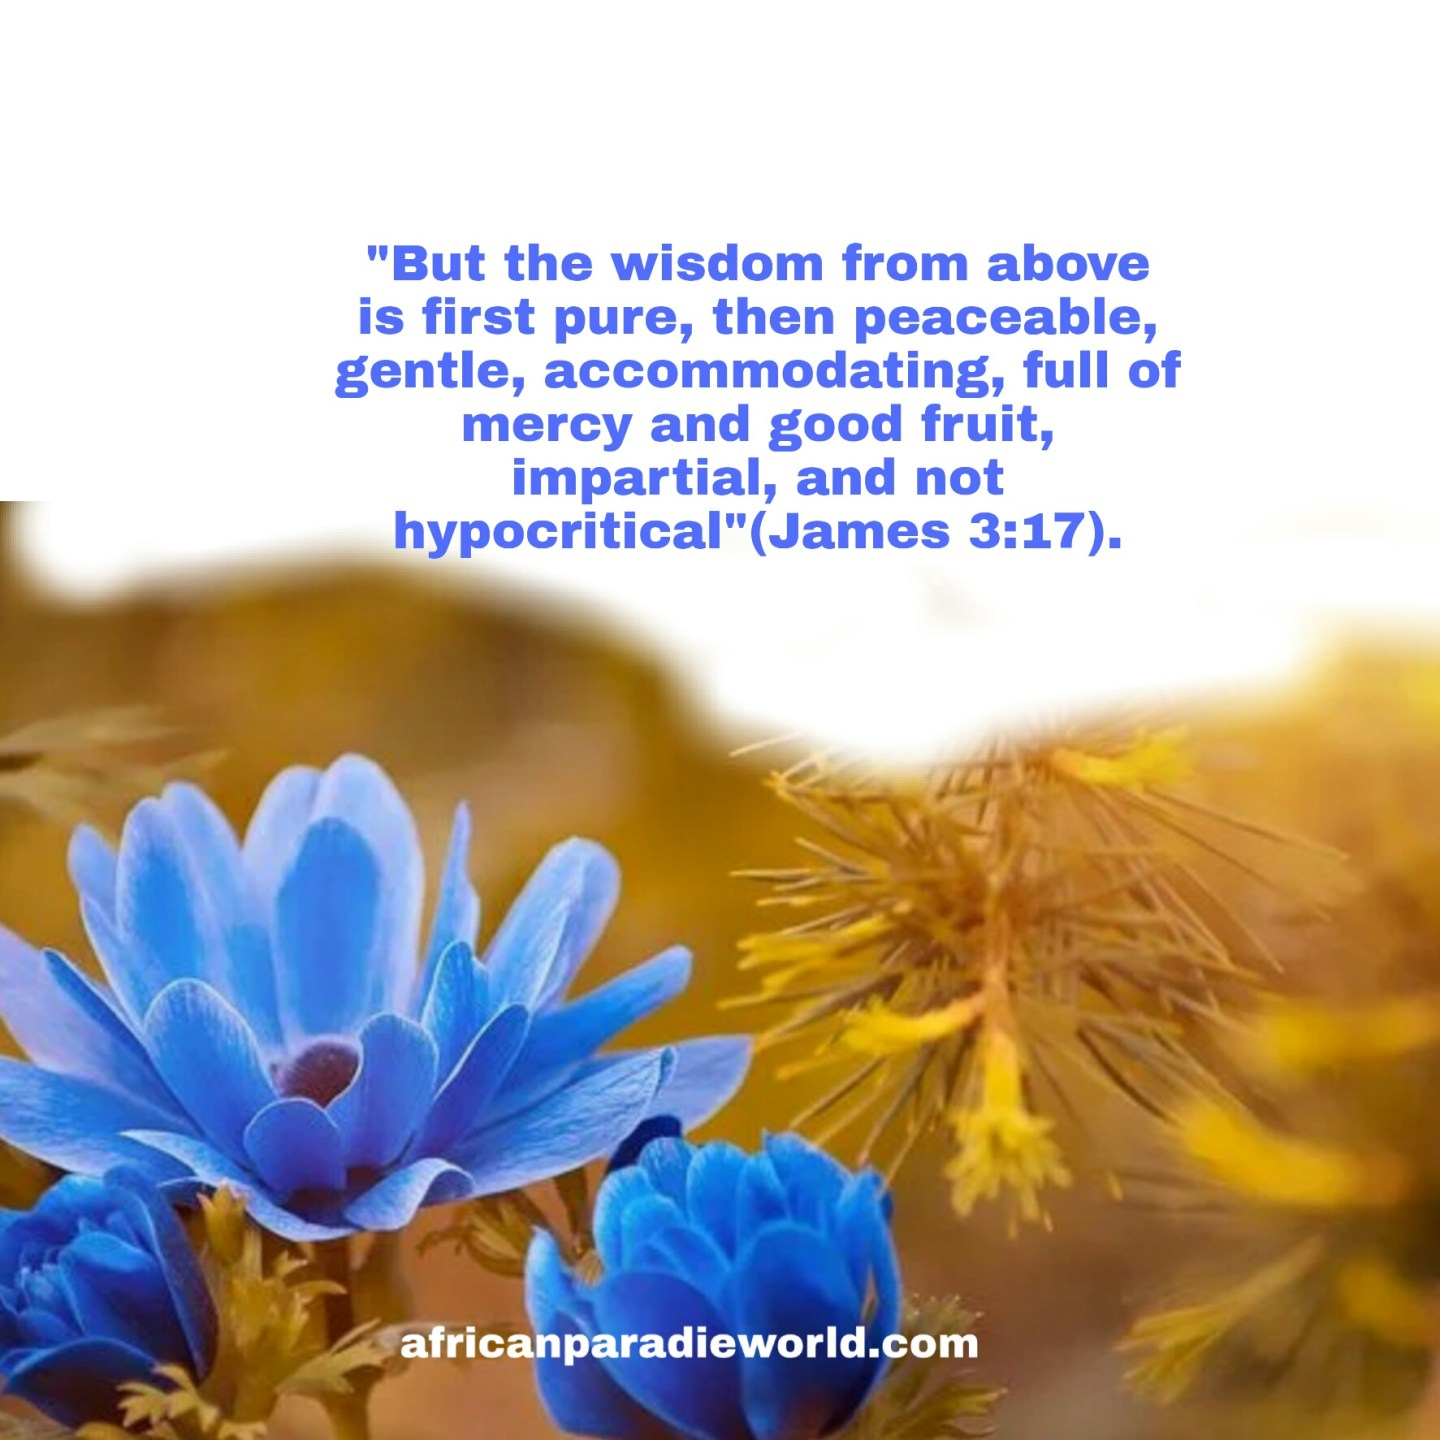 Wisdom from above Bible verse